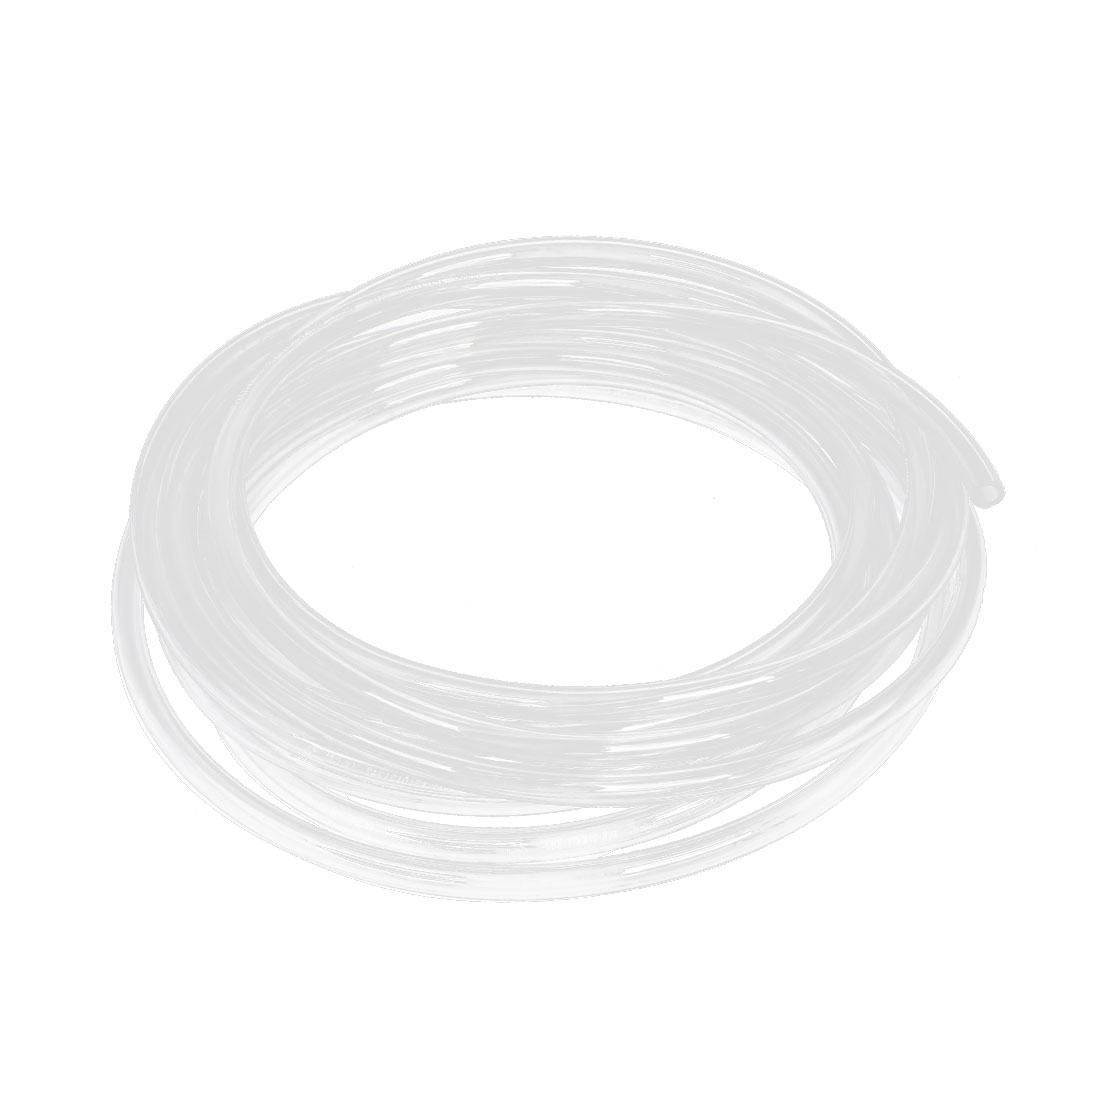 Aquarium Oxygen Circulate Soft Plastic Flexible Pipe Tube Hose Clear 9M 30 Feet